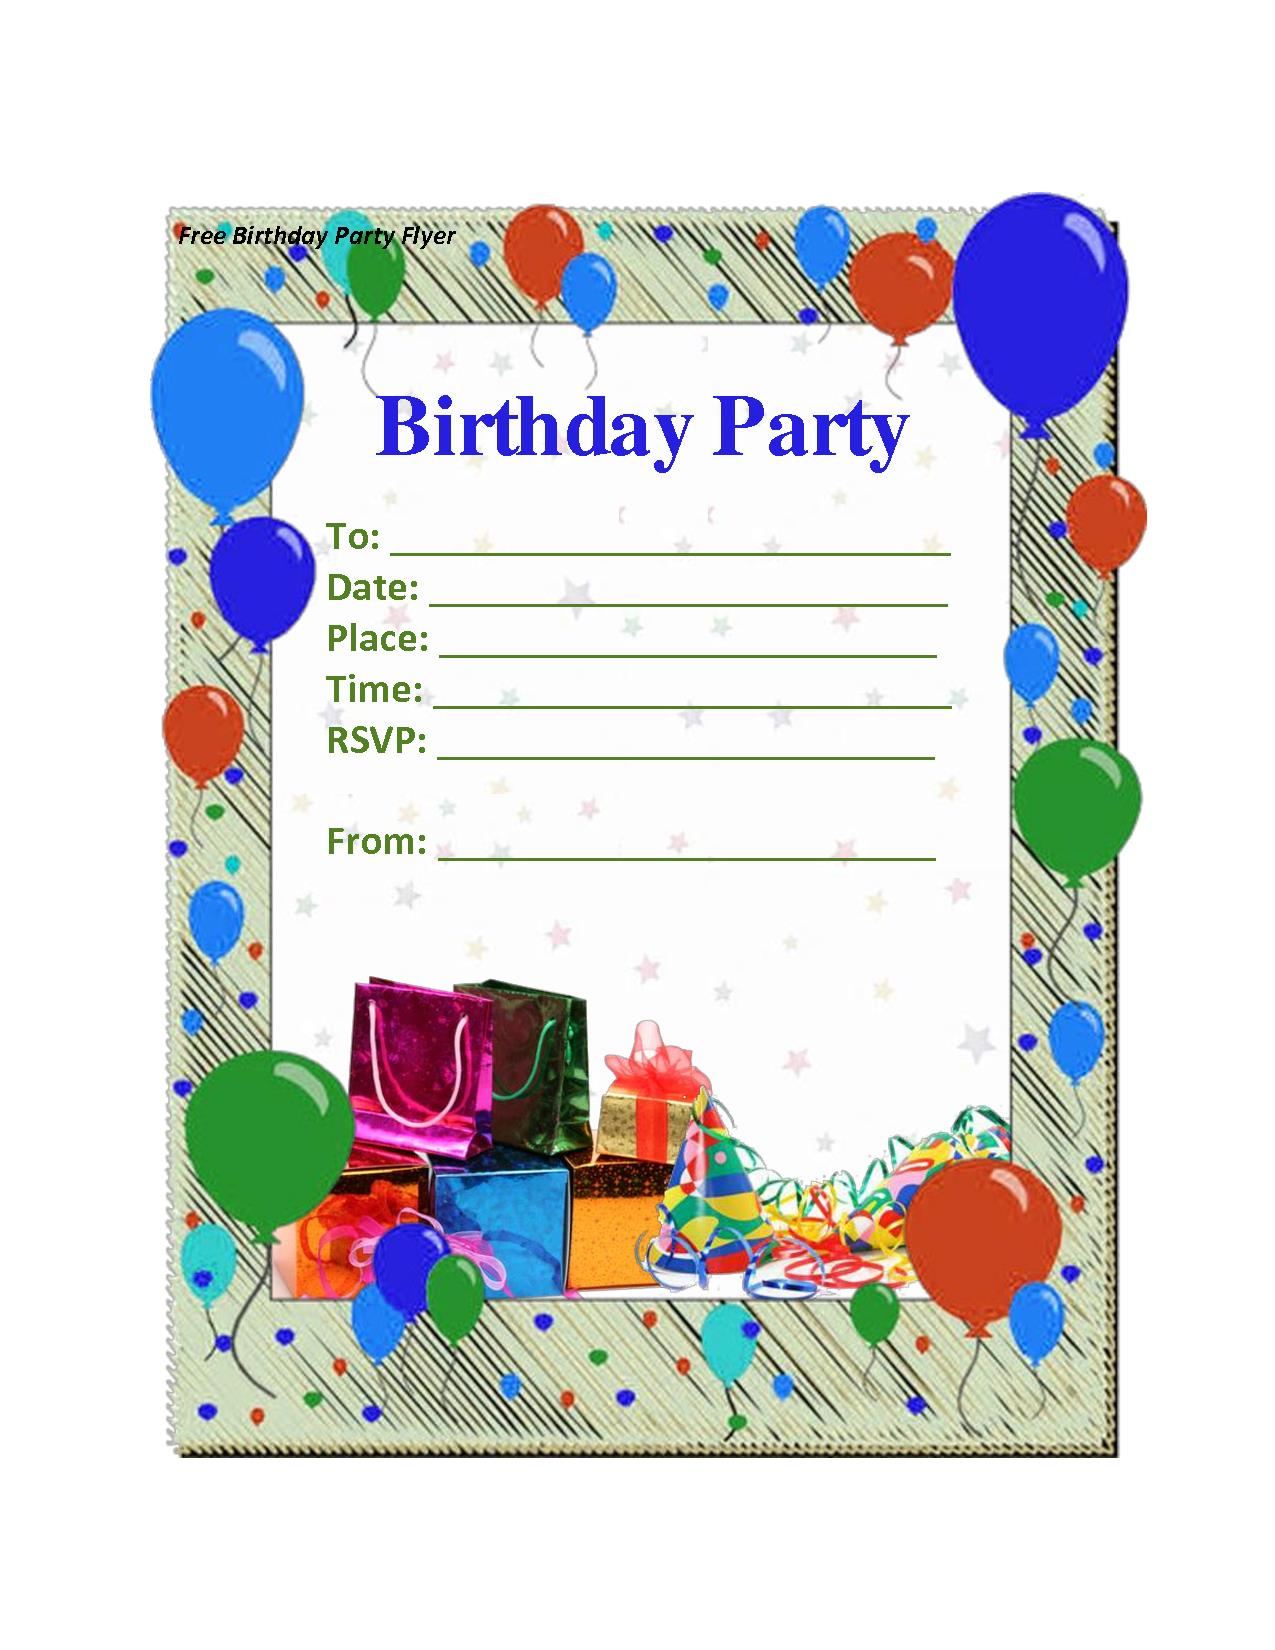 design your own birthday invitation cards free ; Birthday-Party-Invitations-Templates-is-one-of-the-best-idea-for-you-to-make-your-own-birthday-Invitation-design-1